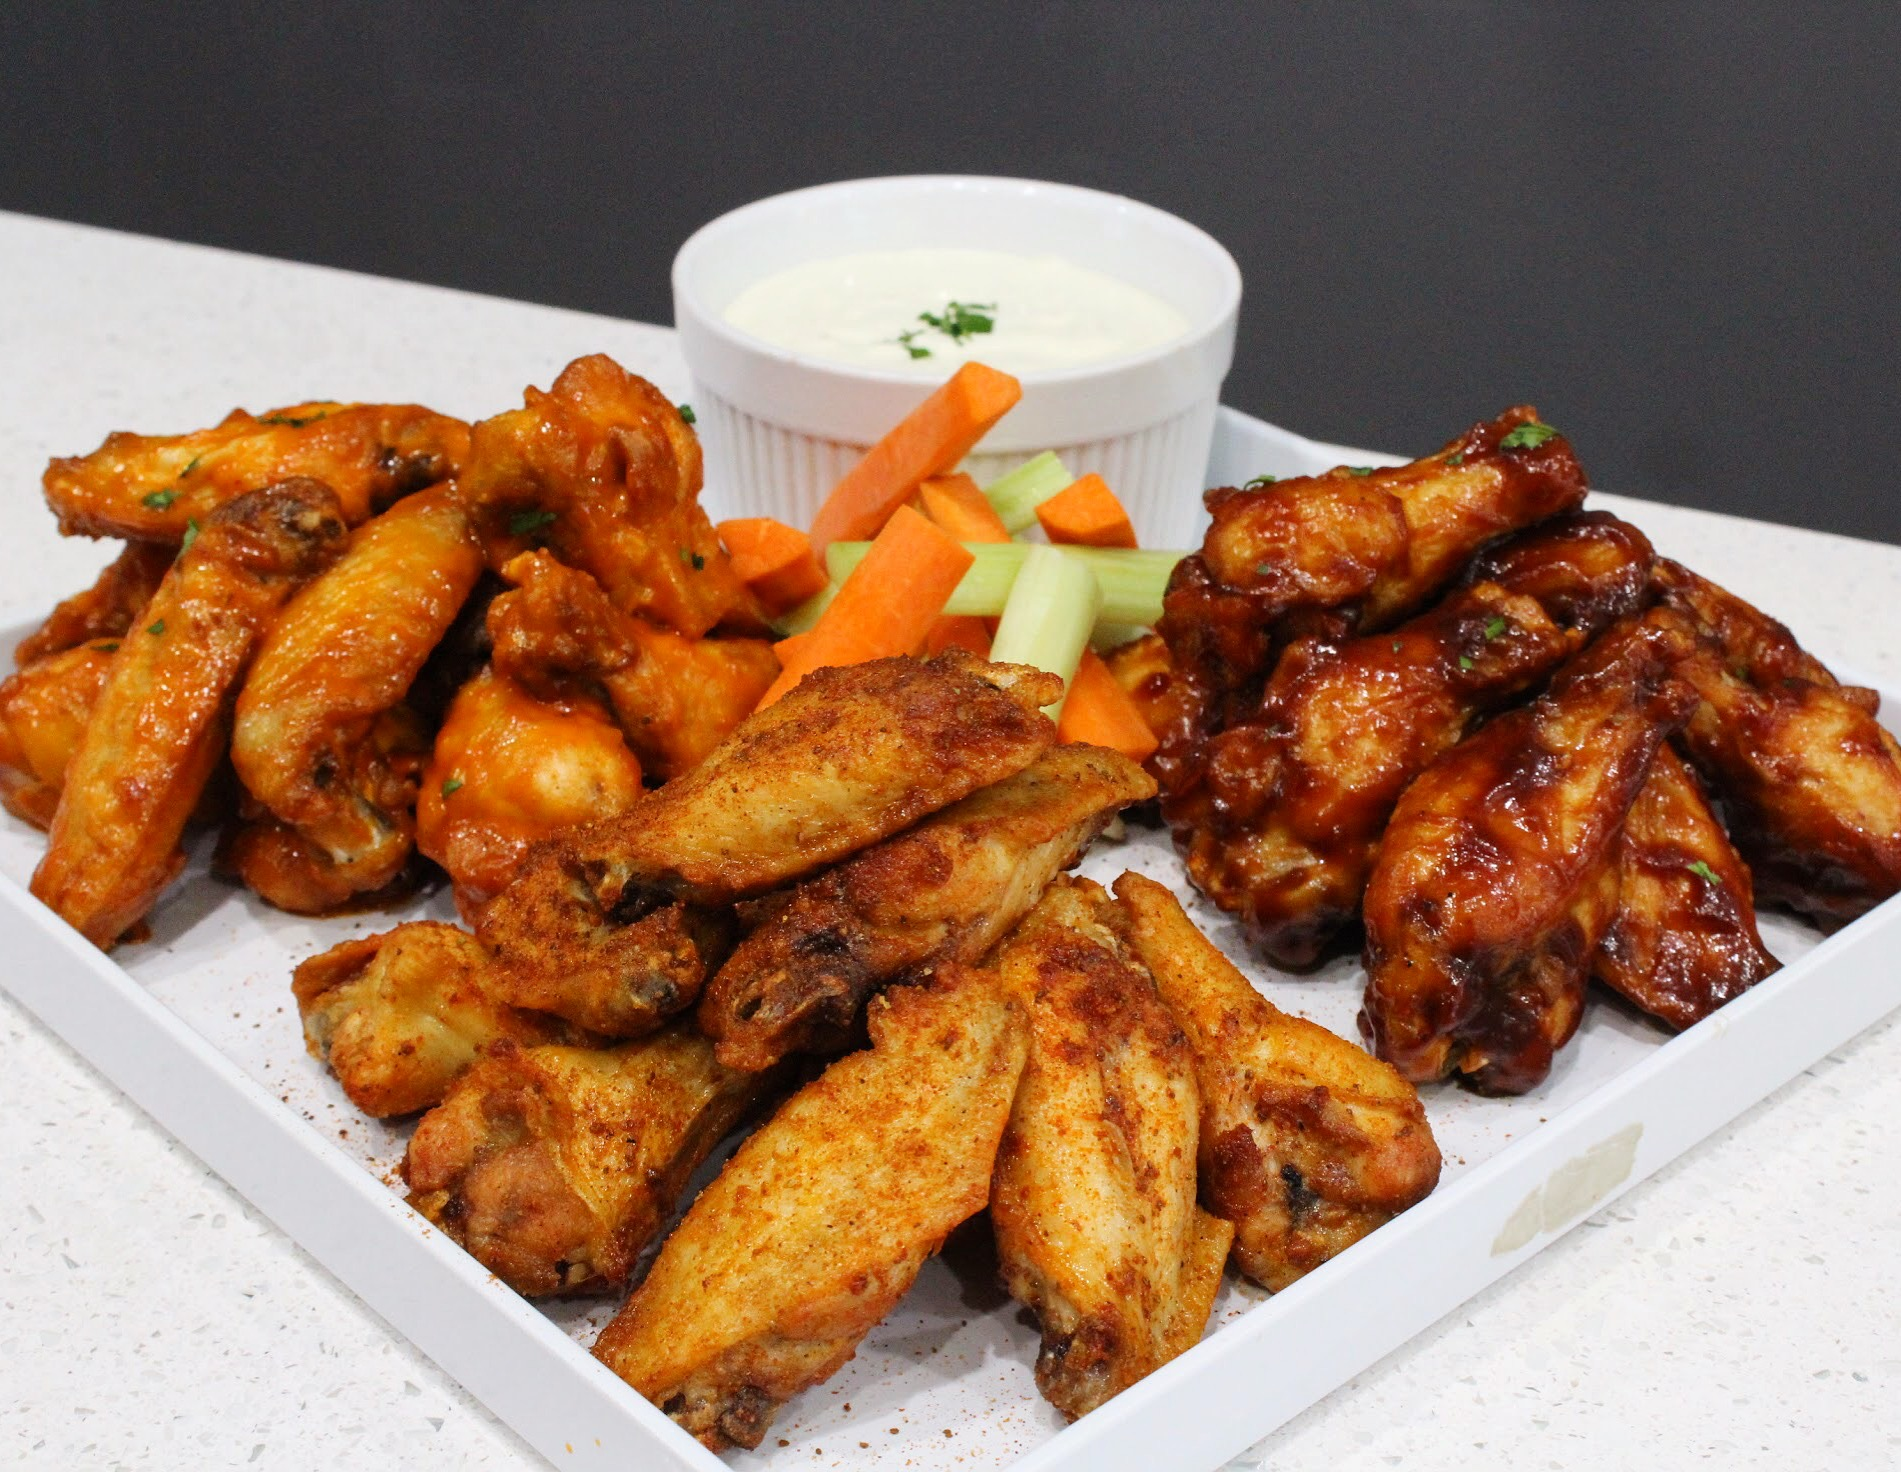 House made favorites for the Big game - We're making all your game day party favorites like wings, queso, crab dip and more. Order ahead of time by calling 301-841-8151 or pick up in store.